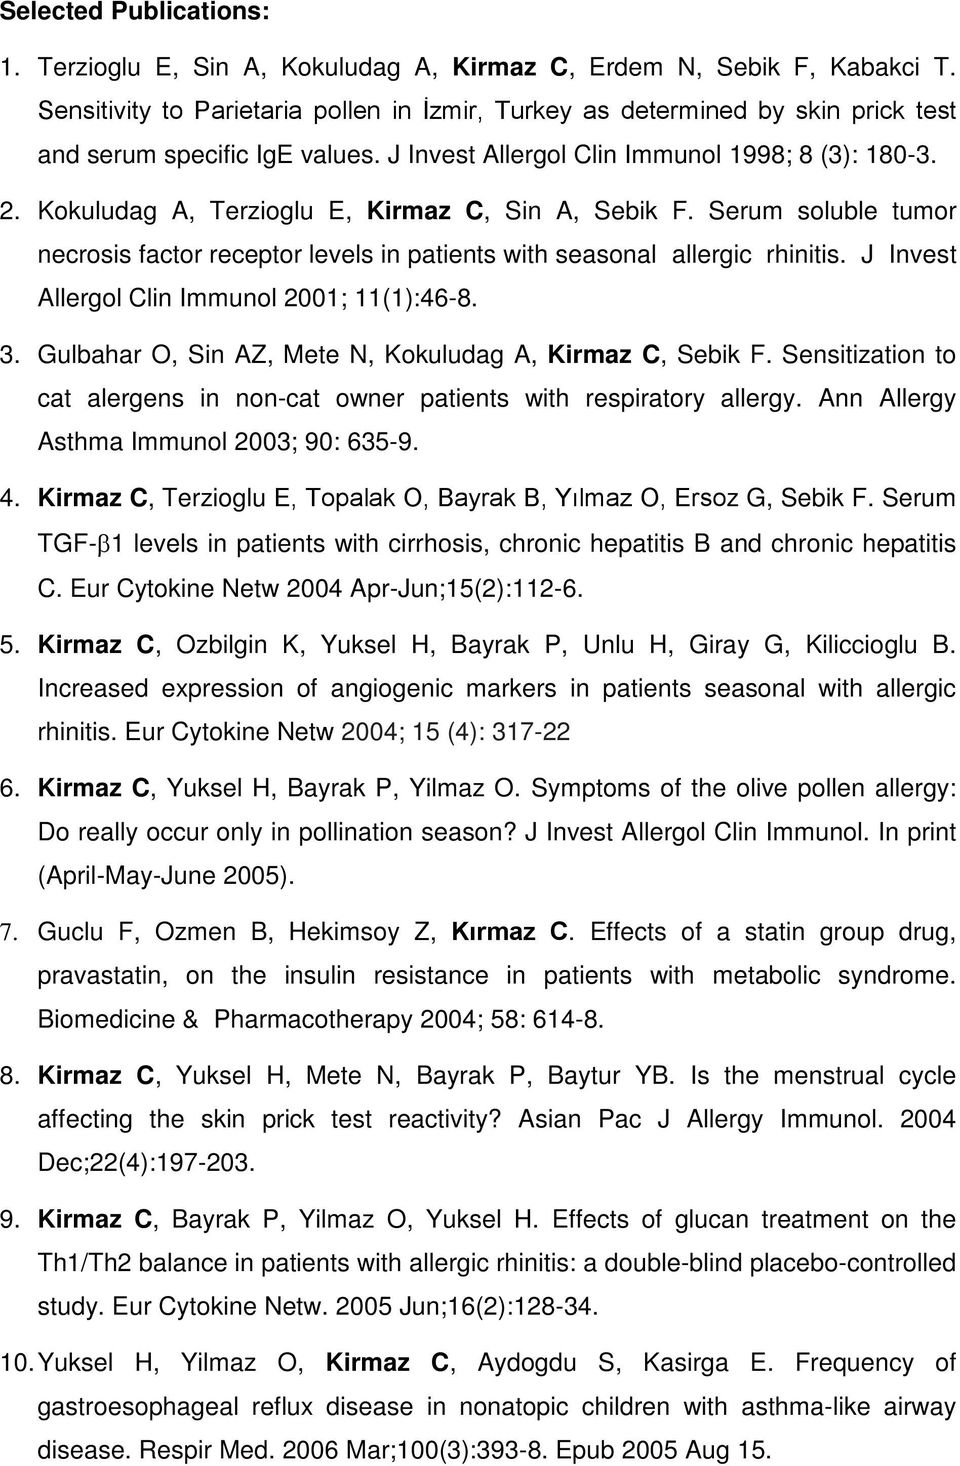 Kokuludag A, Terzioglu E, Kirmaz C, Sin A, Sebik F. Serum soluble tumor necrosis factor receptor levels in patients with seasonal allergic rhinitis. J Invest Allergol Clin Immunol 2001; 11(1):46-8. 3.